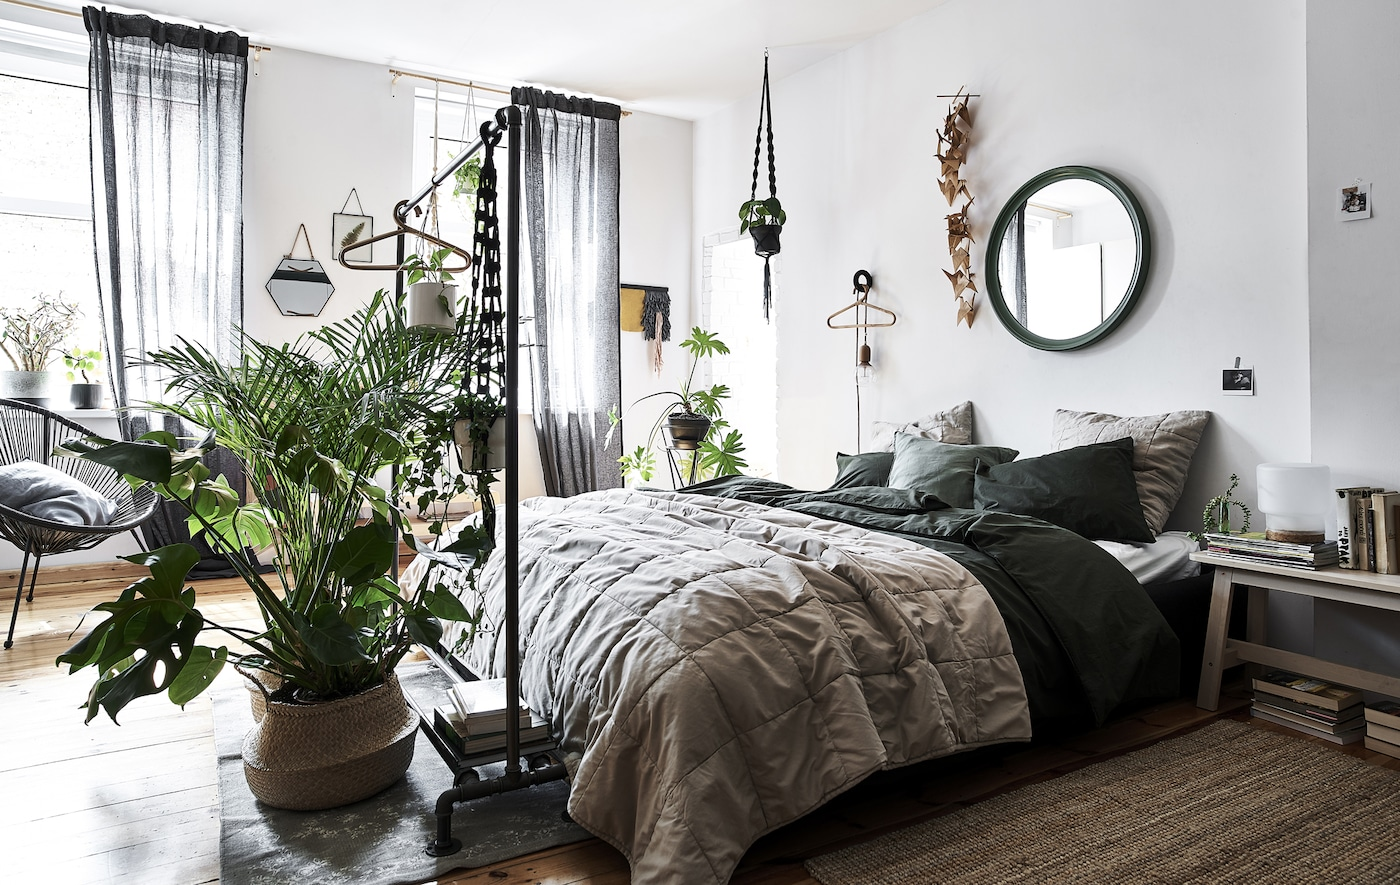 A bedroom with white walls, natural-coloured bedding and plants in wicker baskets.